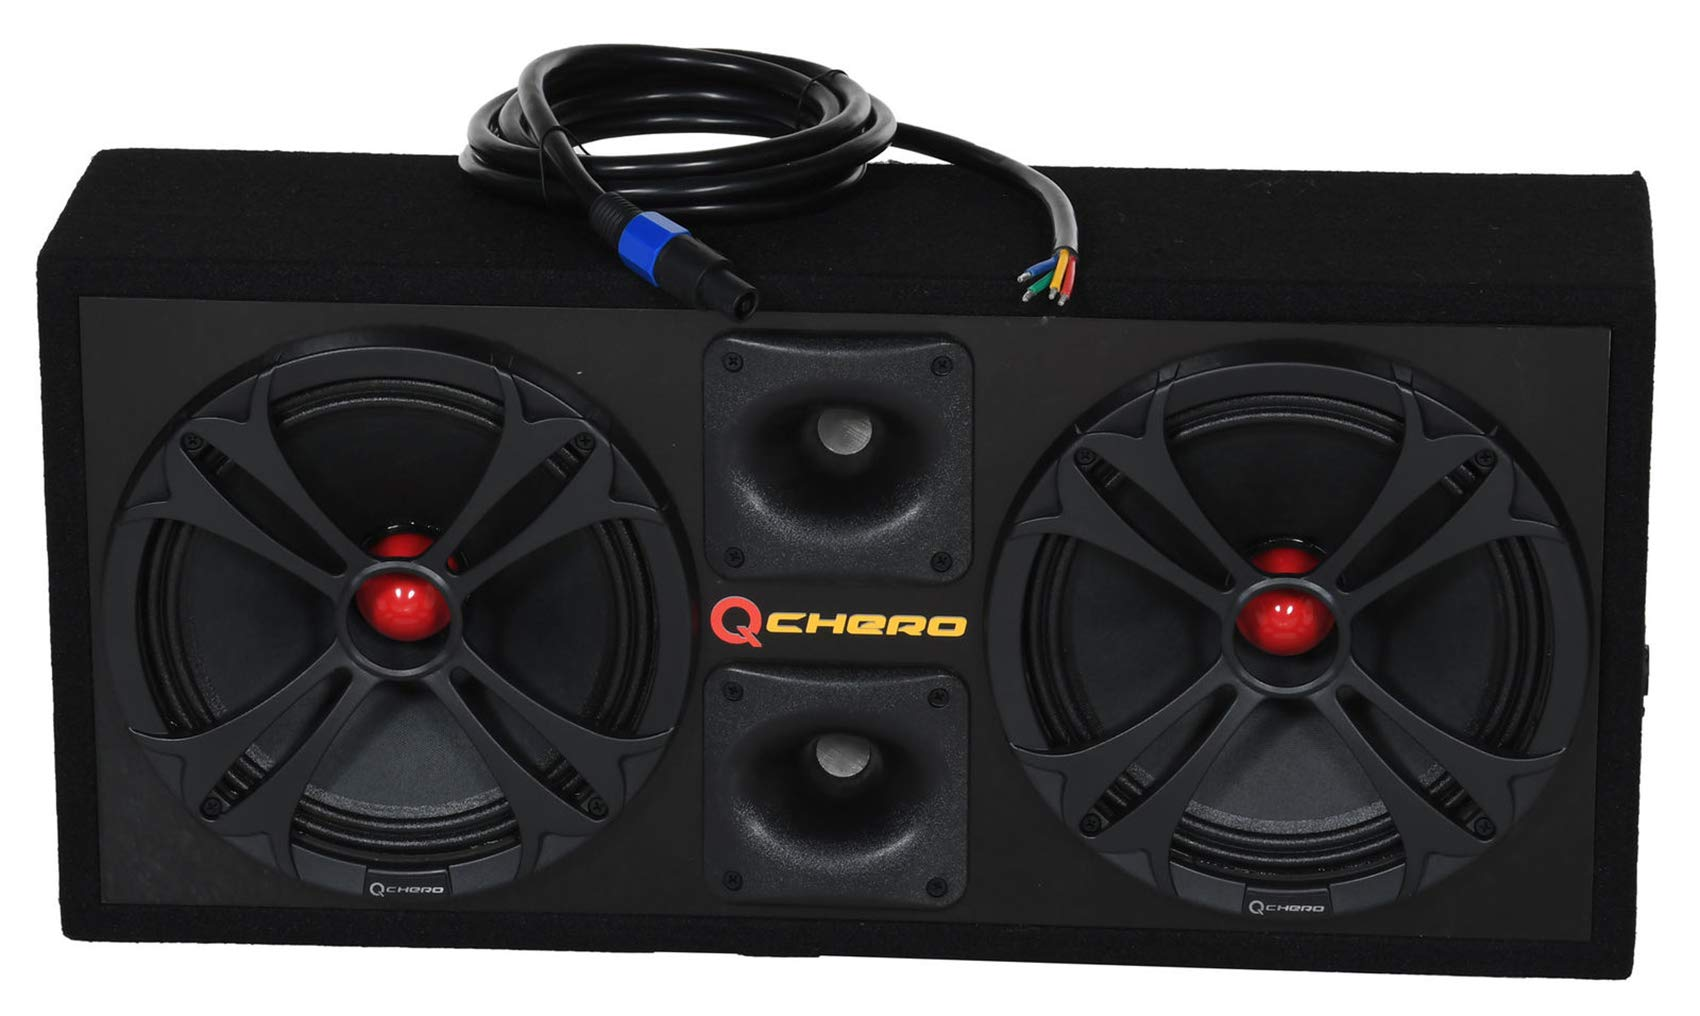 Q Power Chuchero Dual Pre Loaded 10'' Speaker Sub Box Enclosure w/ Speakon Cable